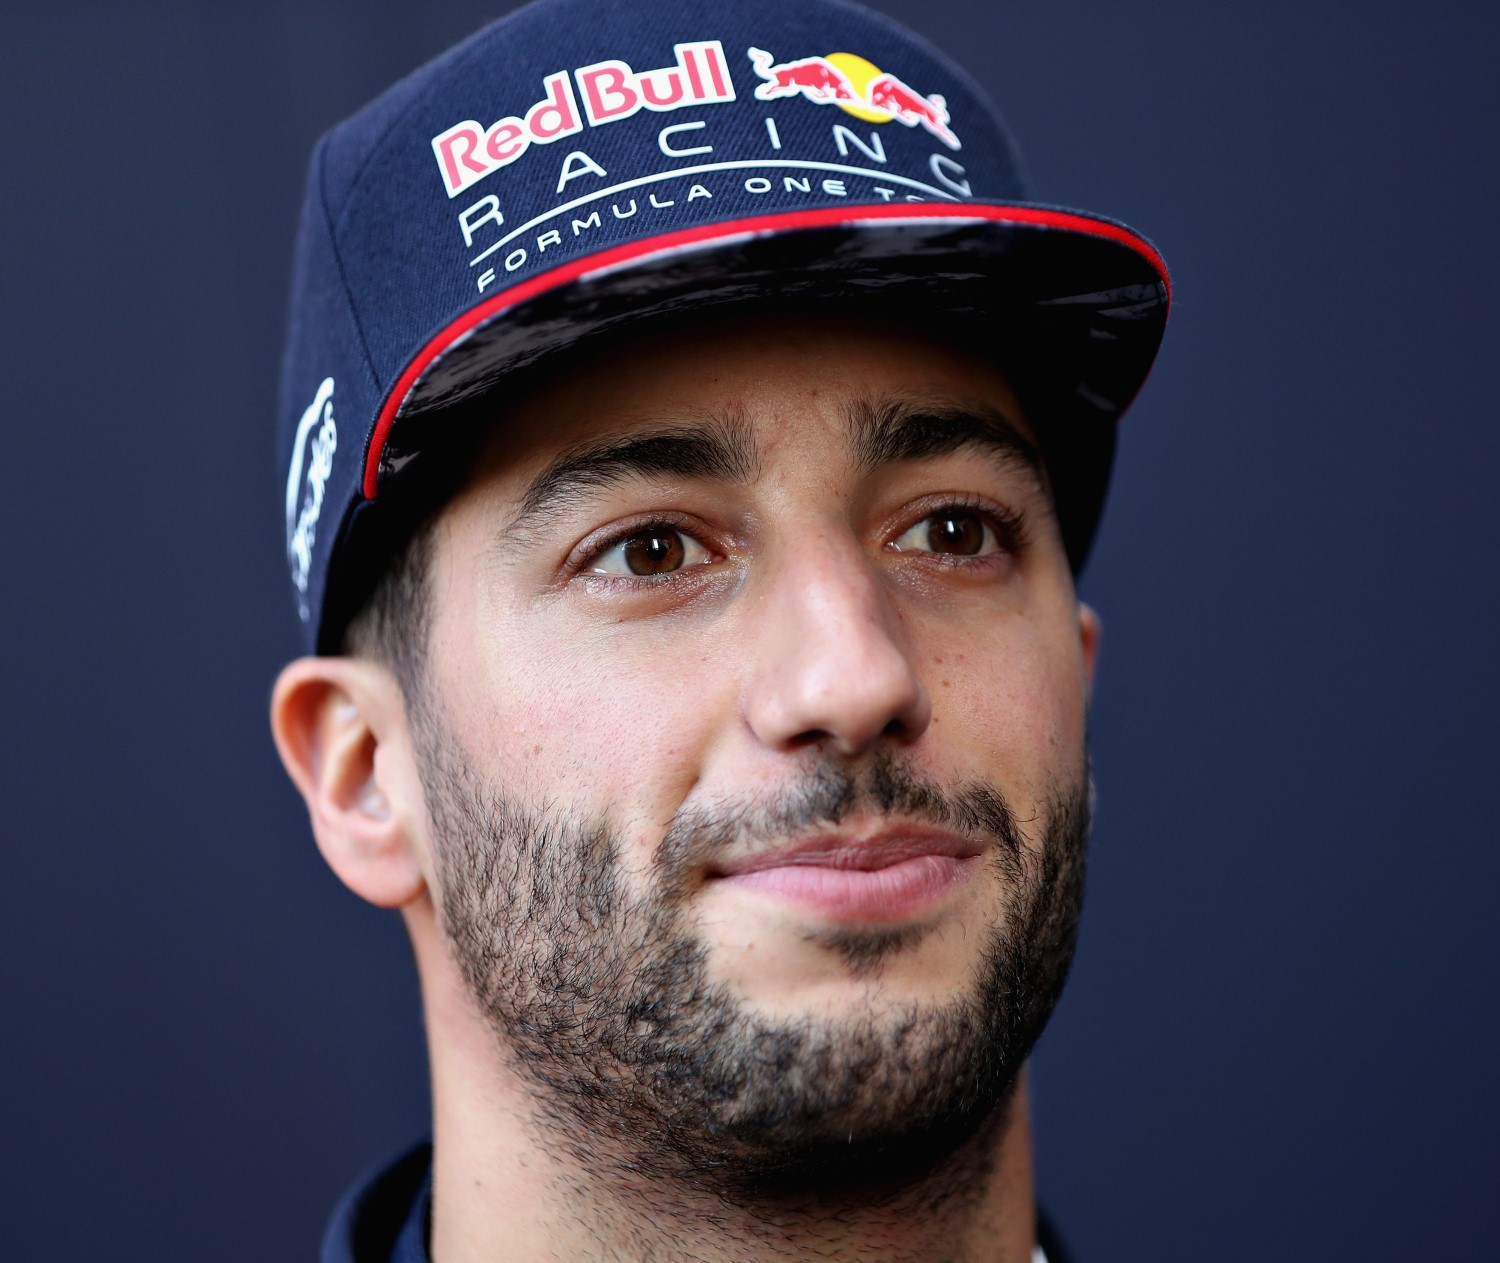 Ricciardo quickly there is only one dream team in F1 - the one where Aldo Costa designs its cars - Mercedes